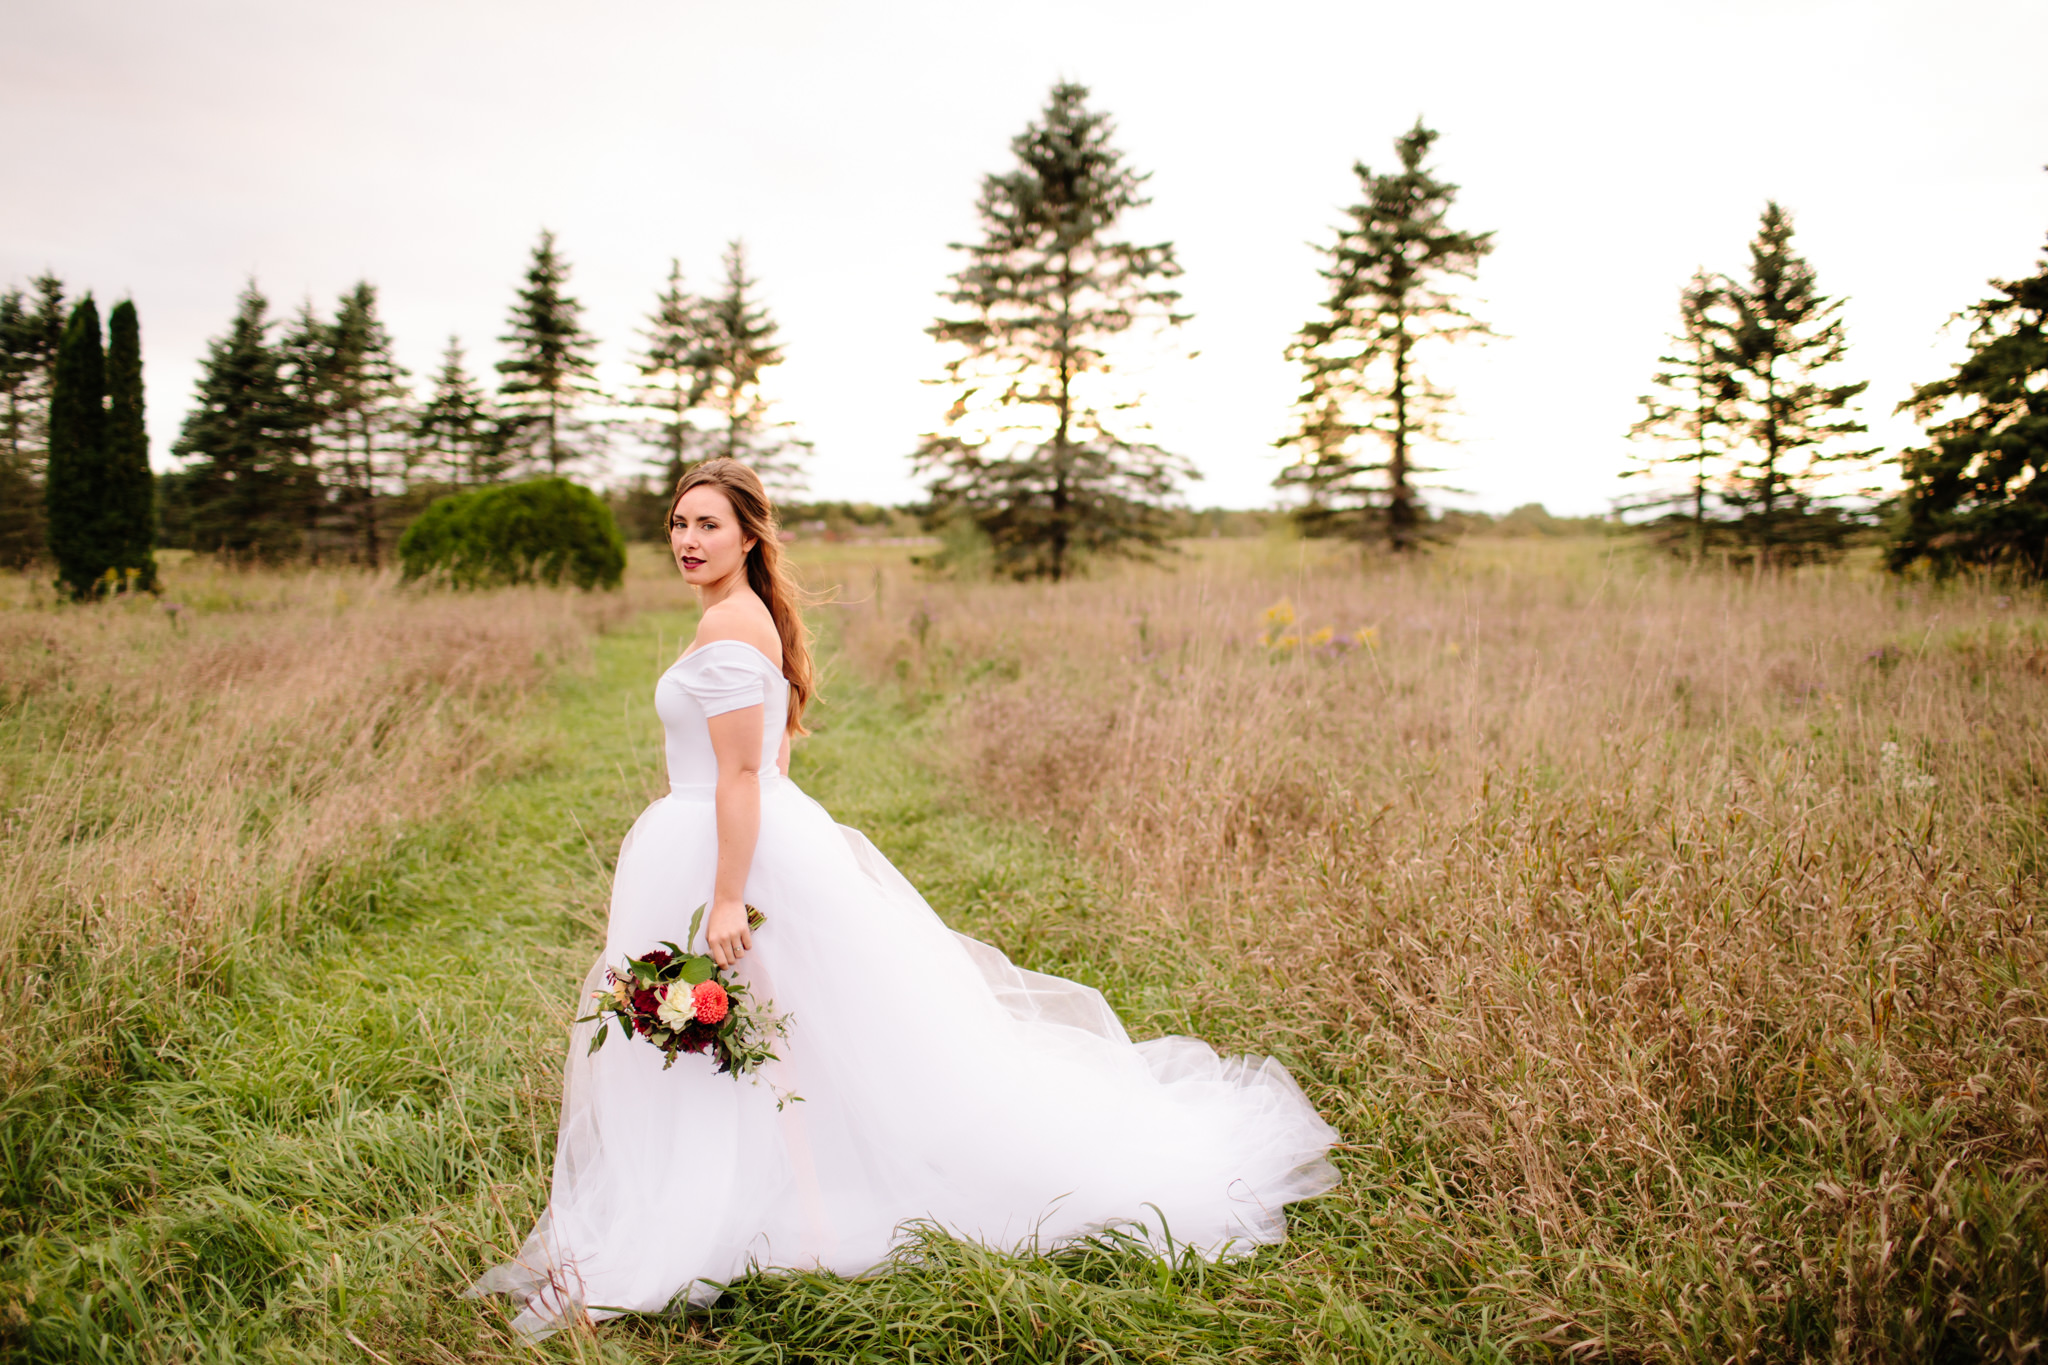 bride displaying large tulle white dress while standing in a field